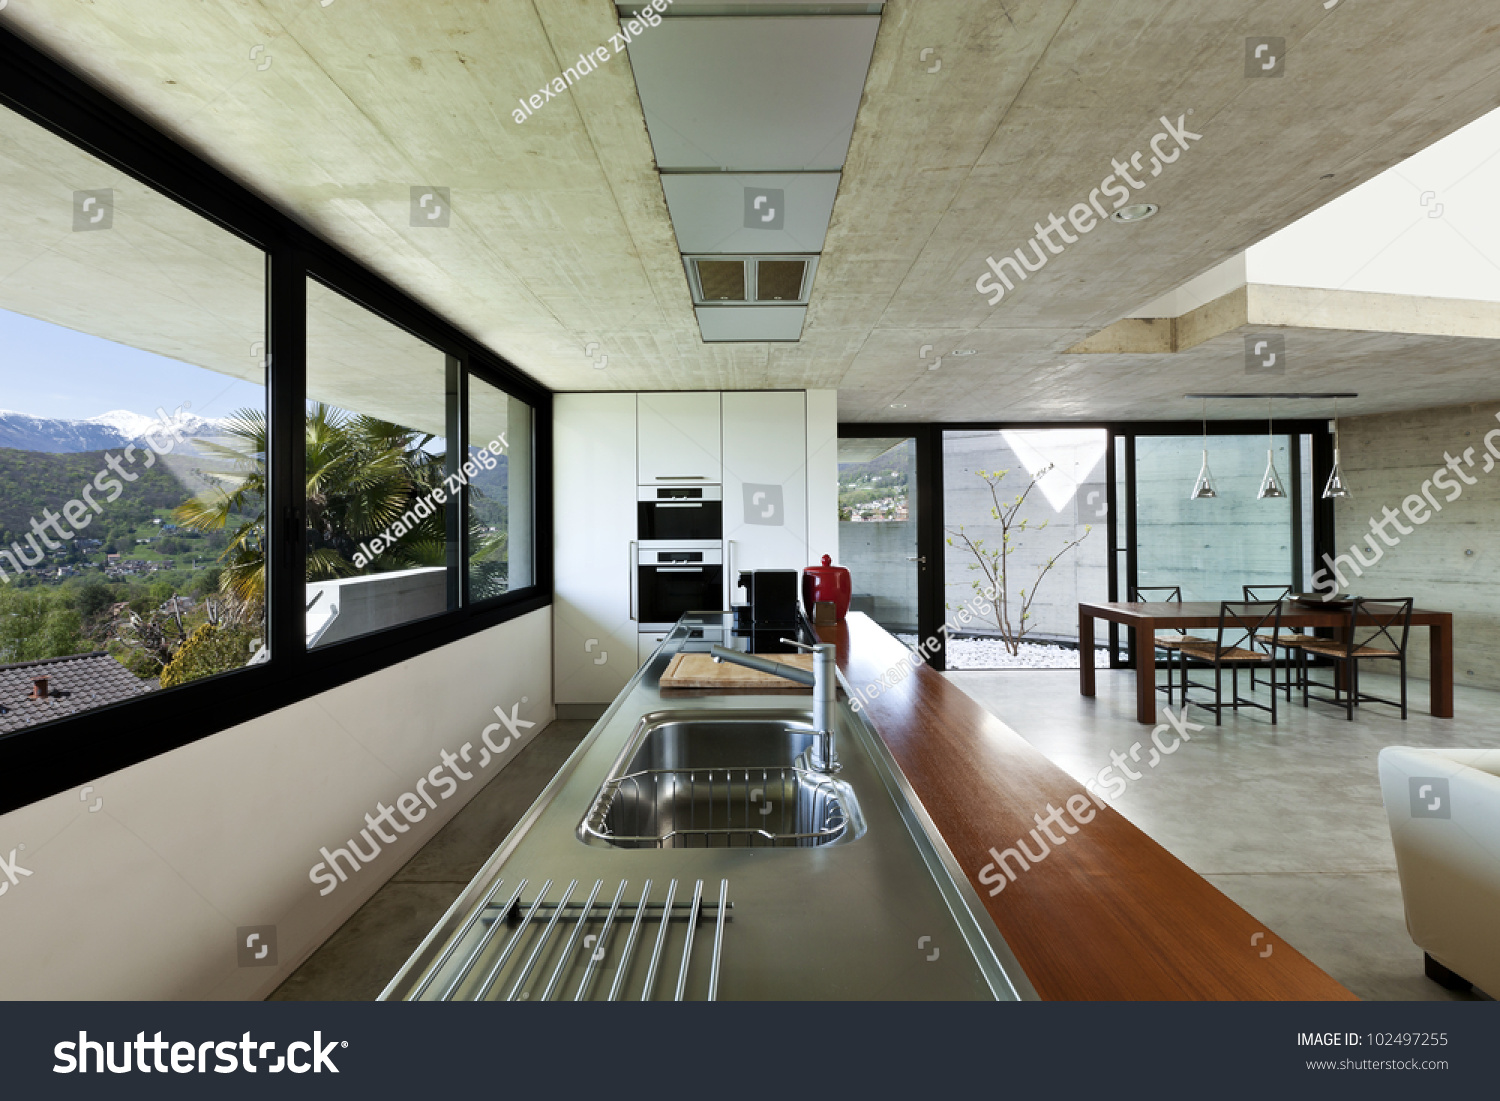 Beautiful modern house interior for Open space inside a building